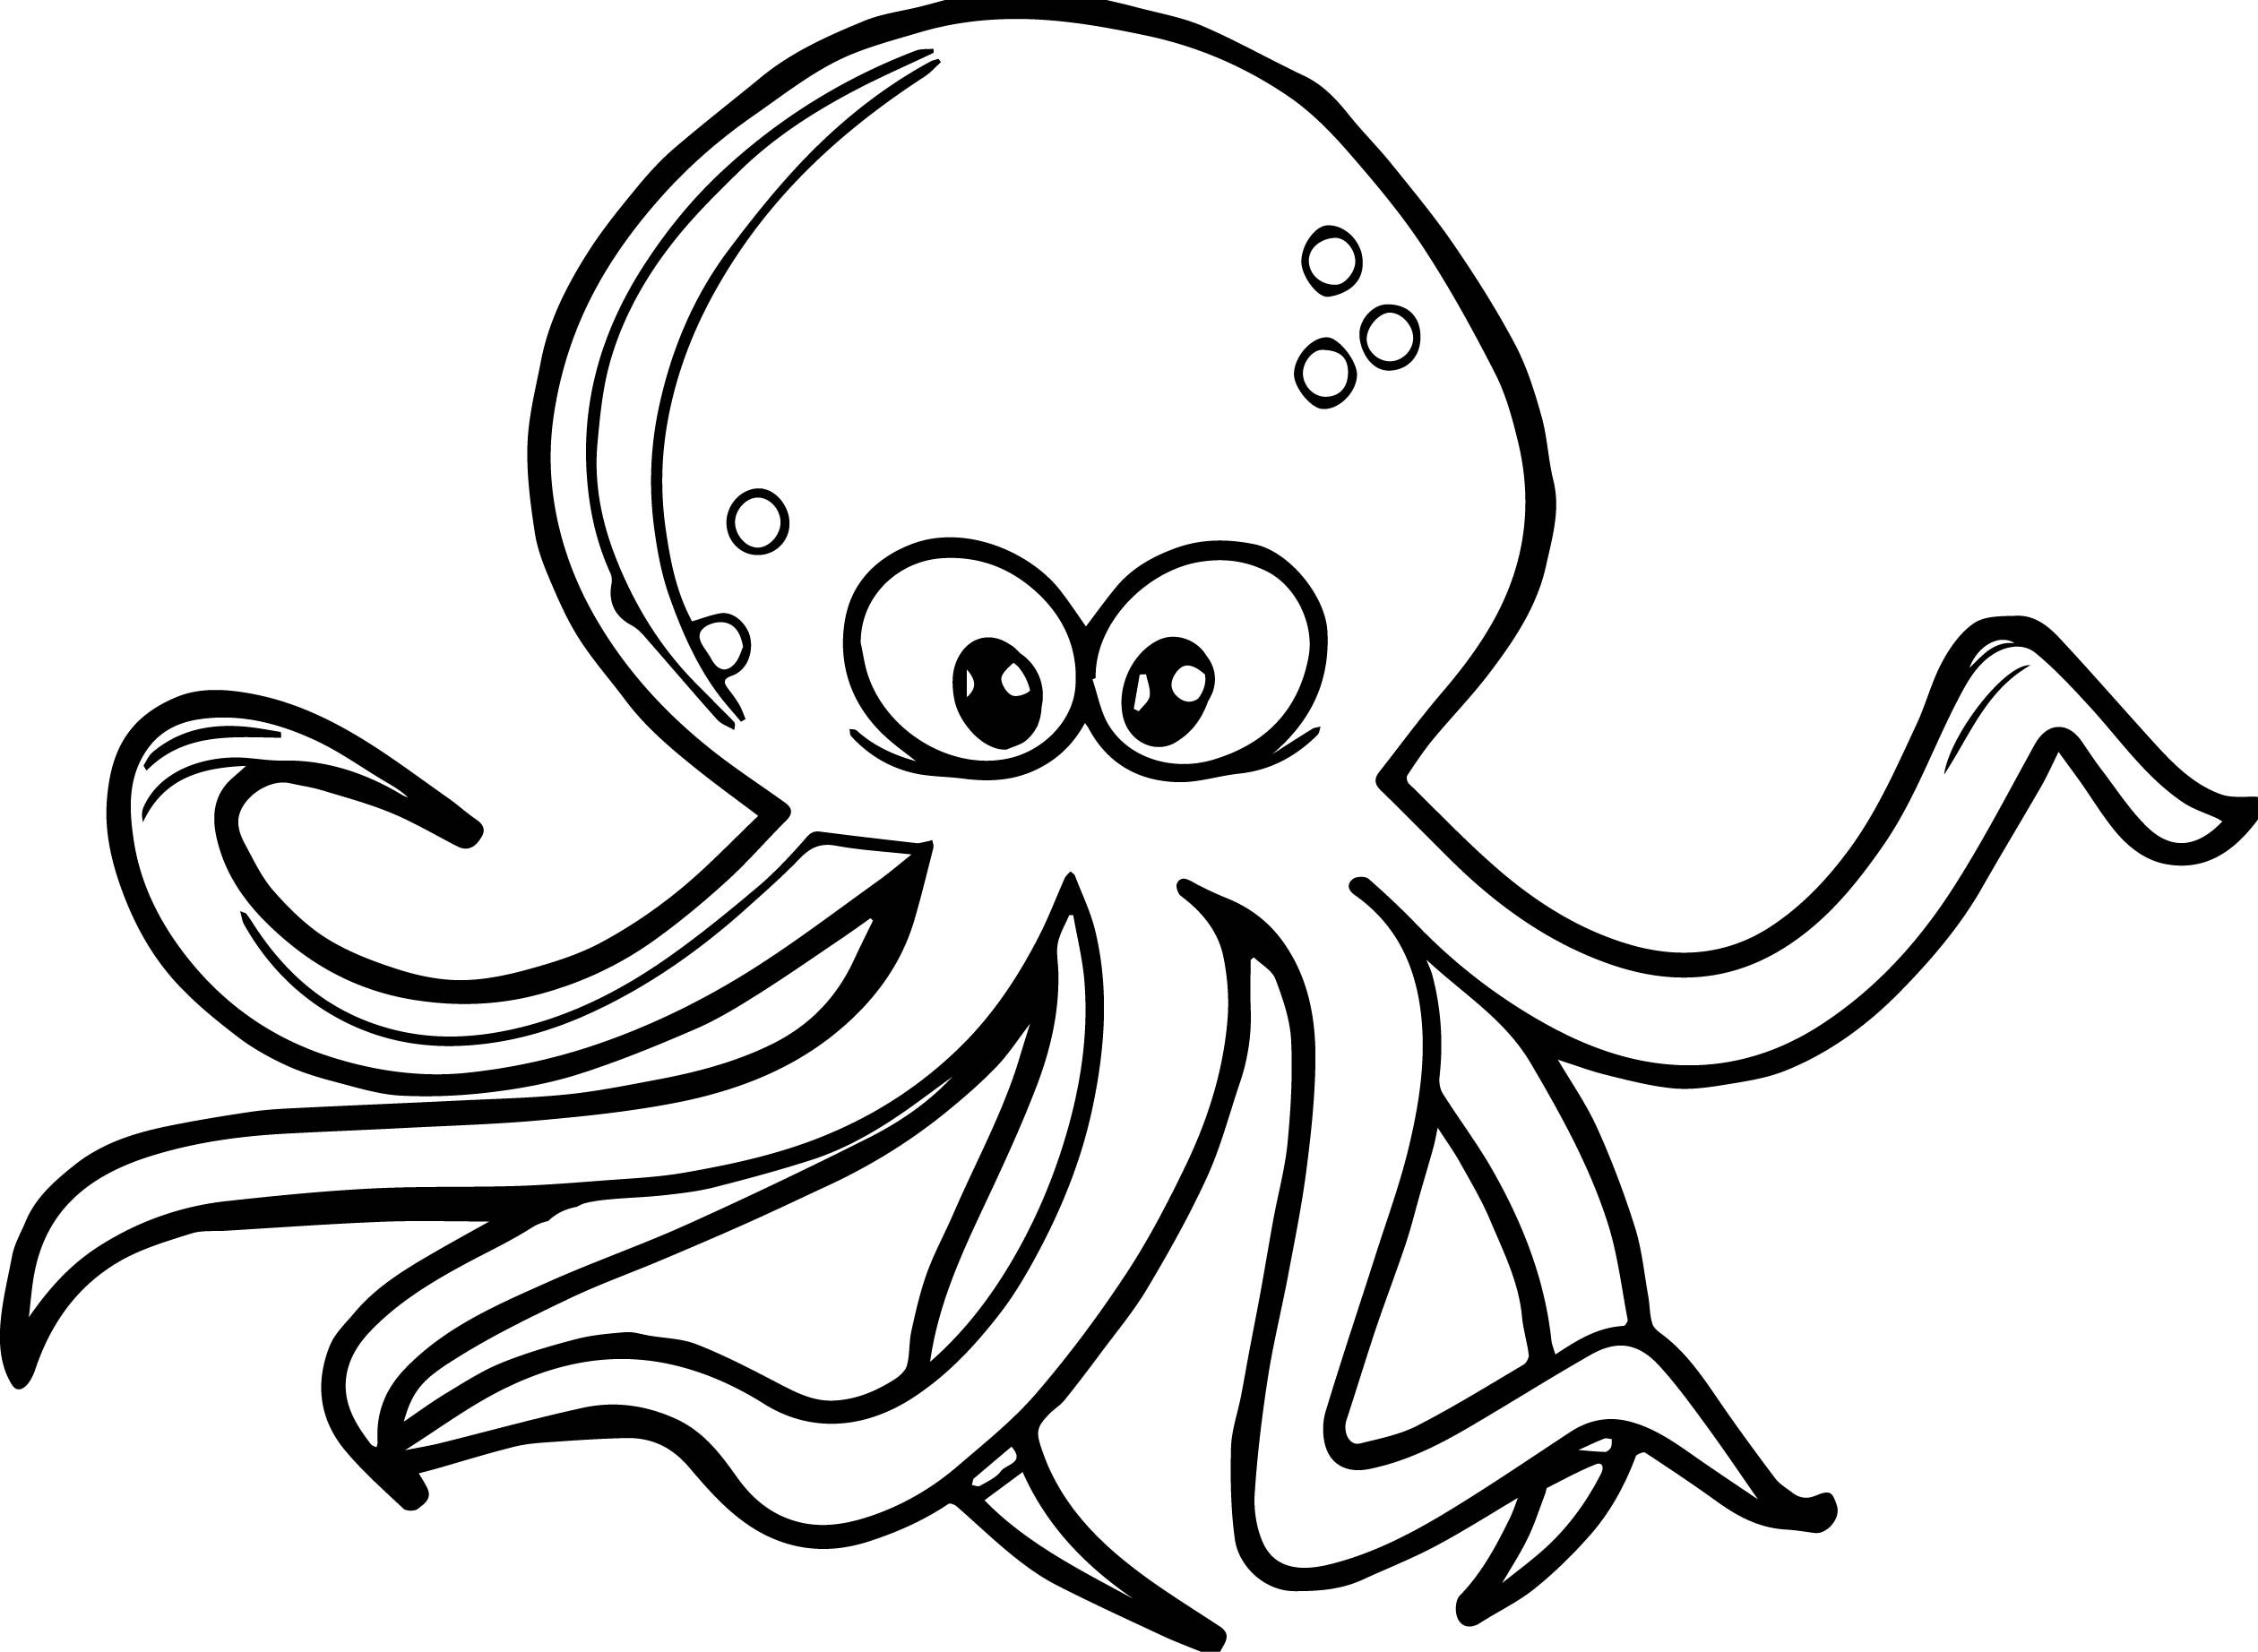 Octopus Coloring Book Pages  Octopus Coloring Page